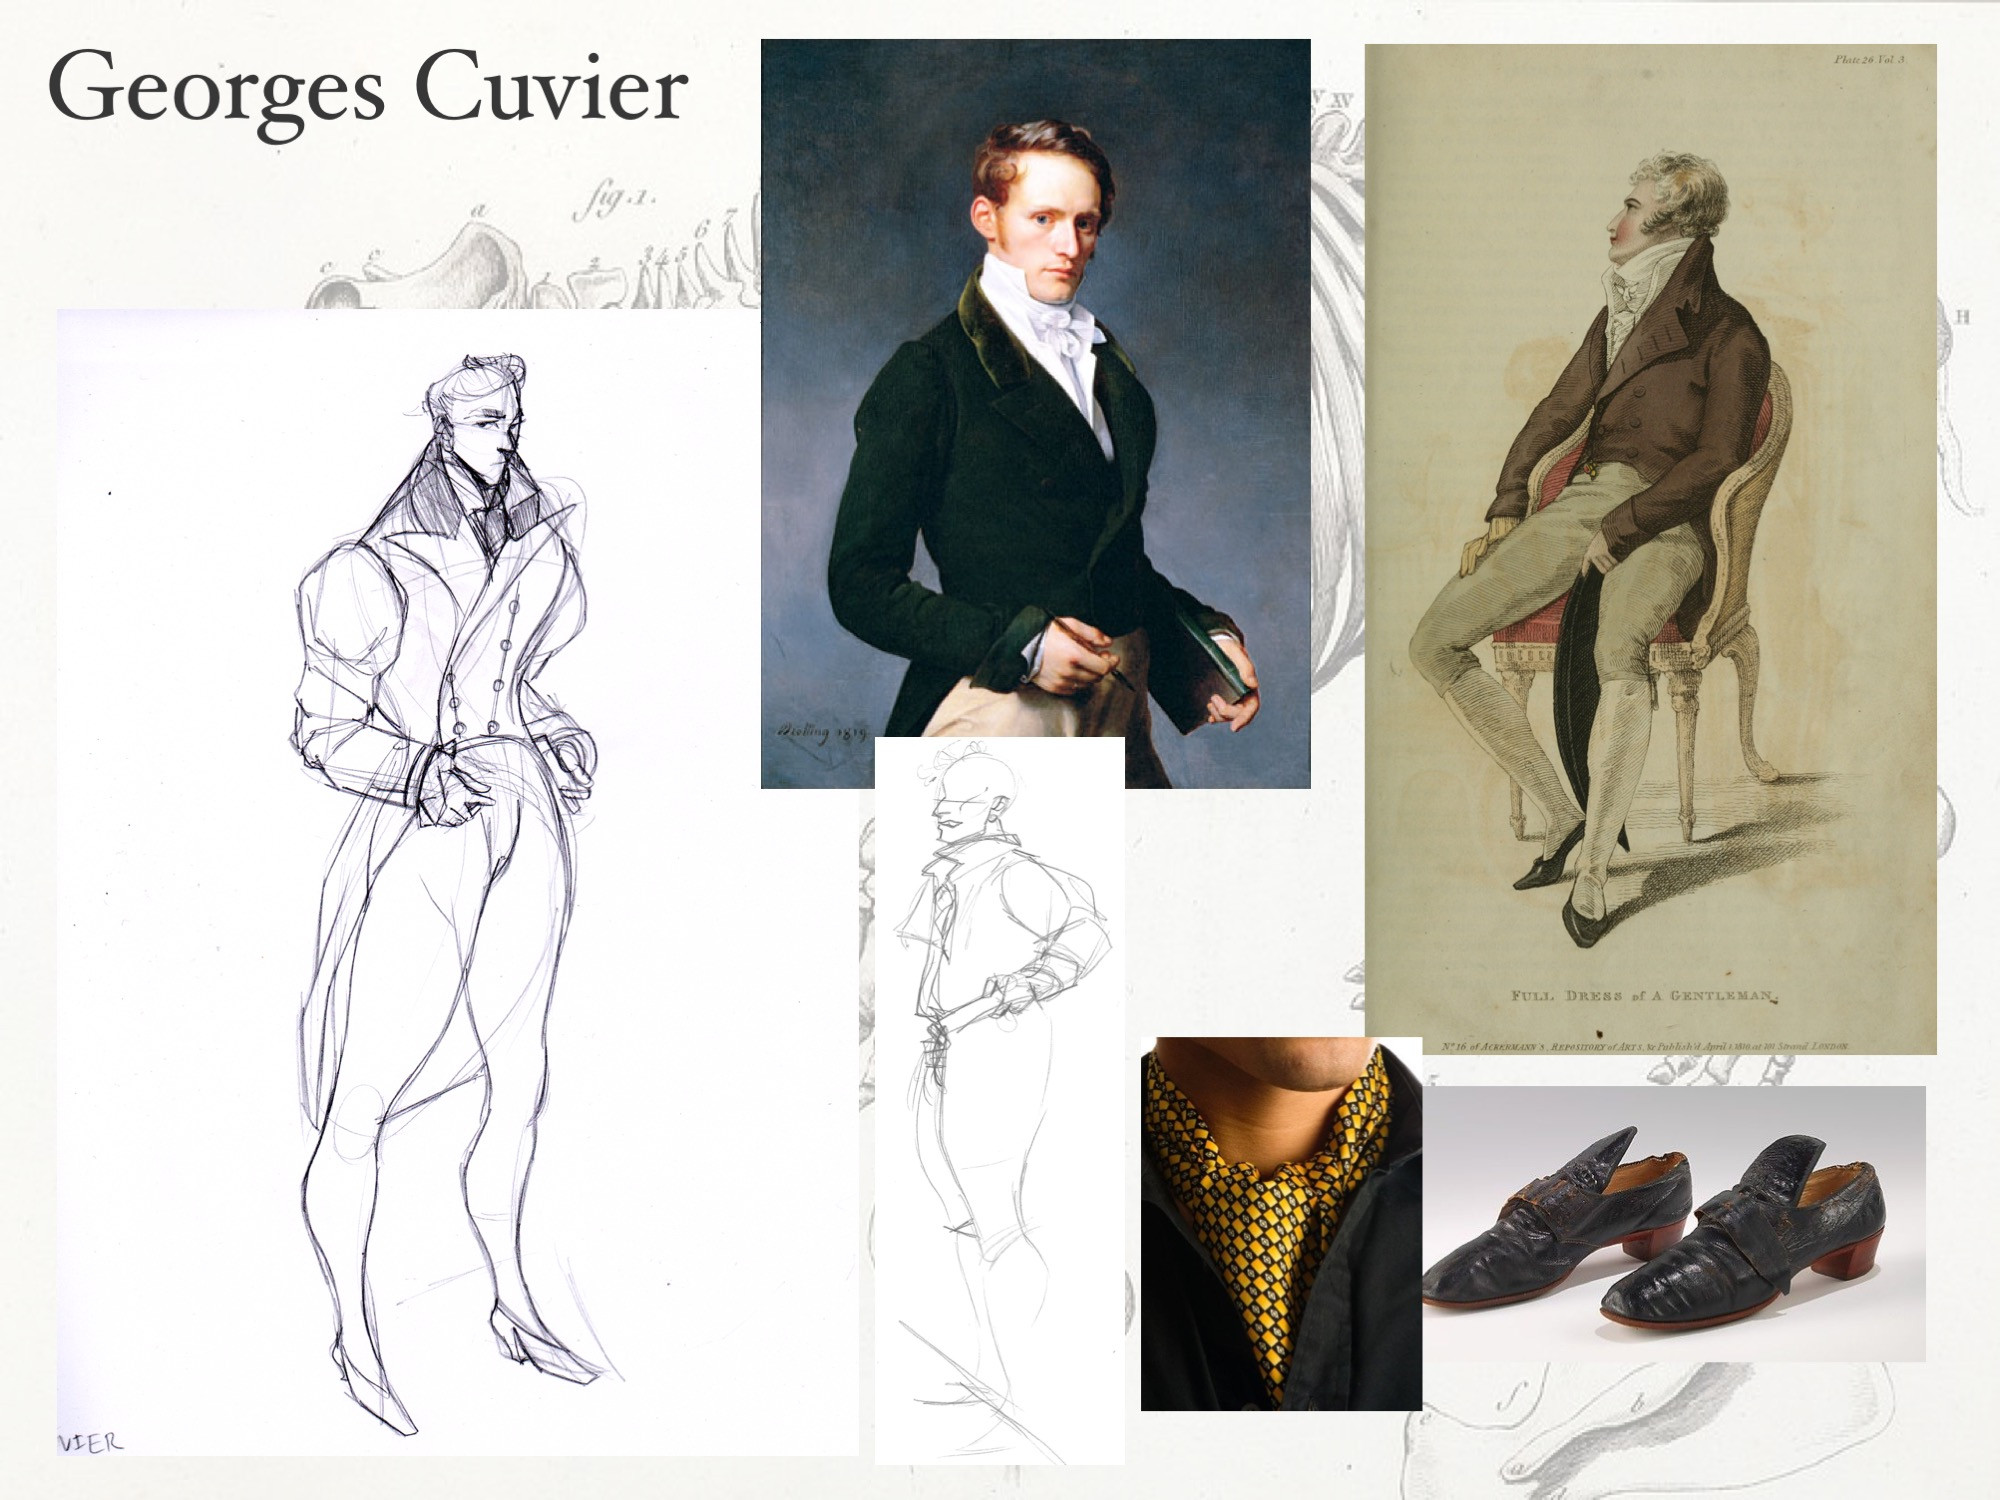 Georges Cuvier: reference. I took paintings of the actual Cuvier (a French archeologist), and exagerrated the proportion of the shoulders and the lapel. This makes him larger than life and intimiating, just like Sara might imagine him to be.